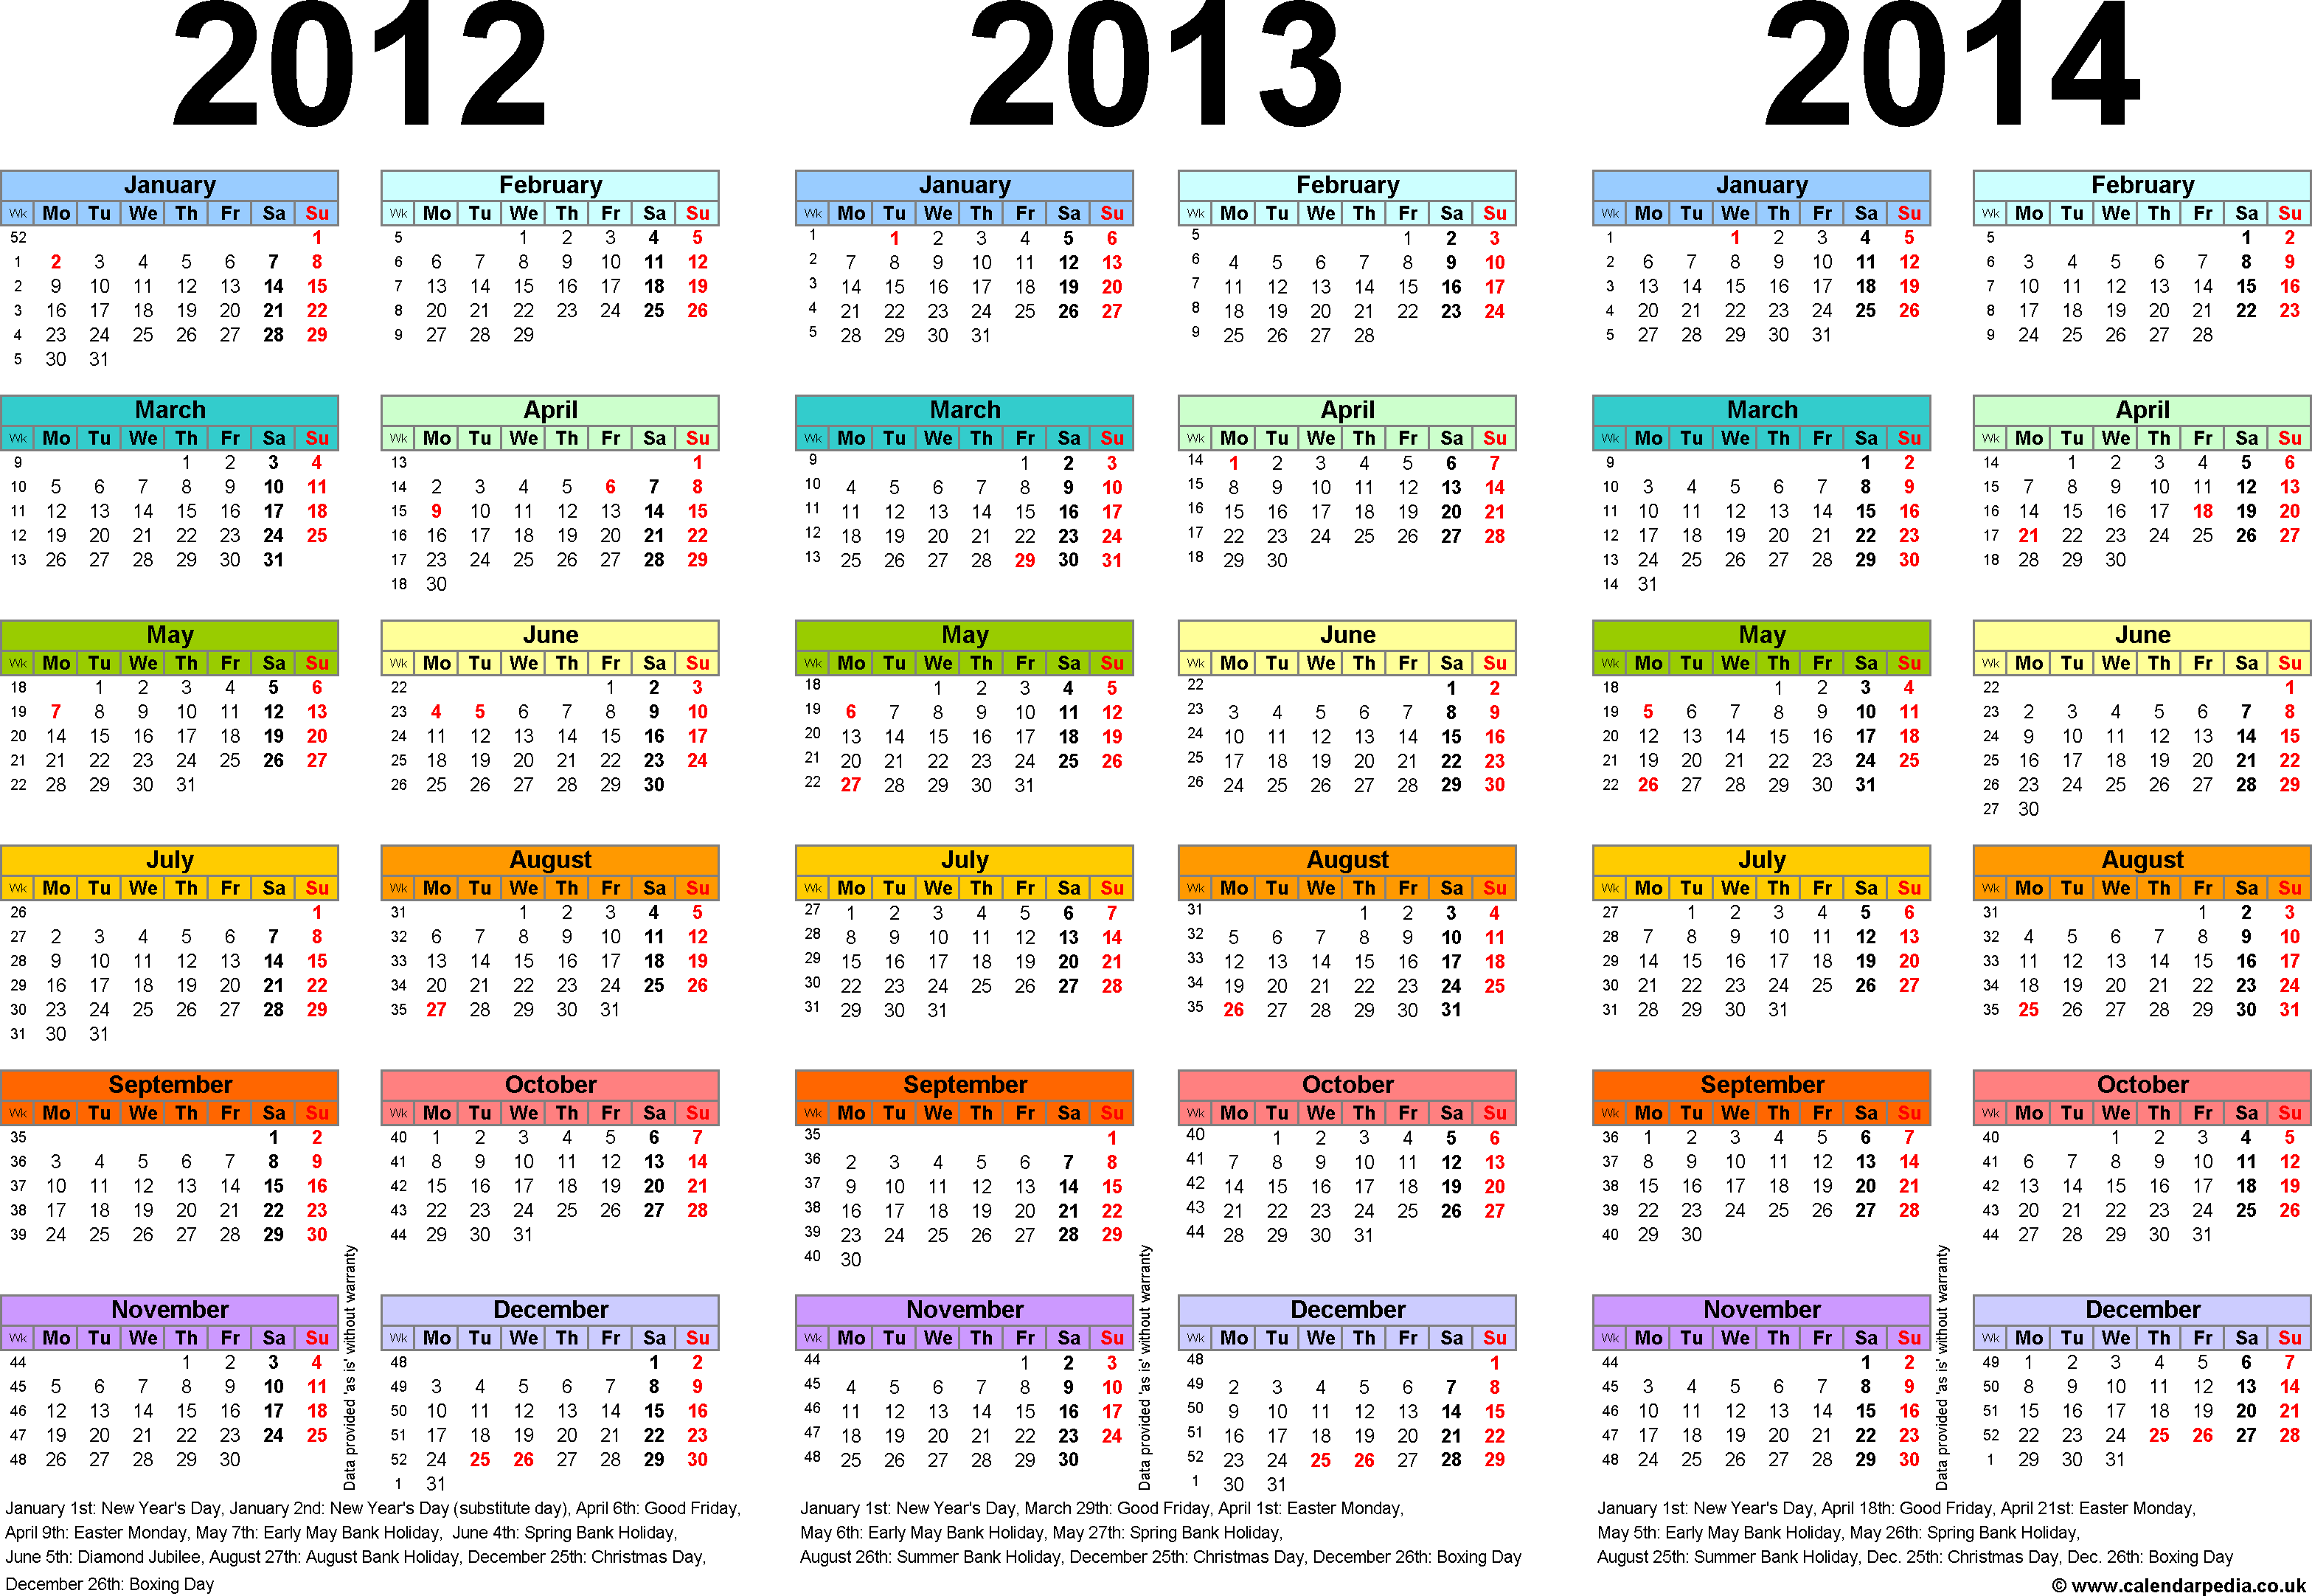 Download Template 1: PDF template for three year calendar 2012-2014 in colour (landscape orientation, 1 page, A4)